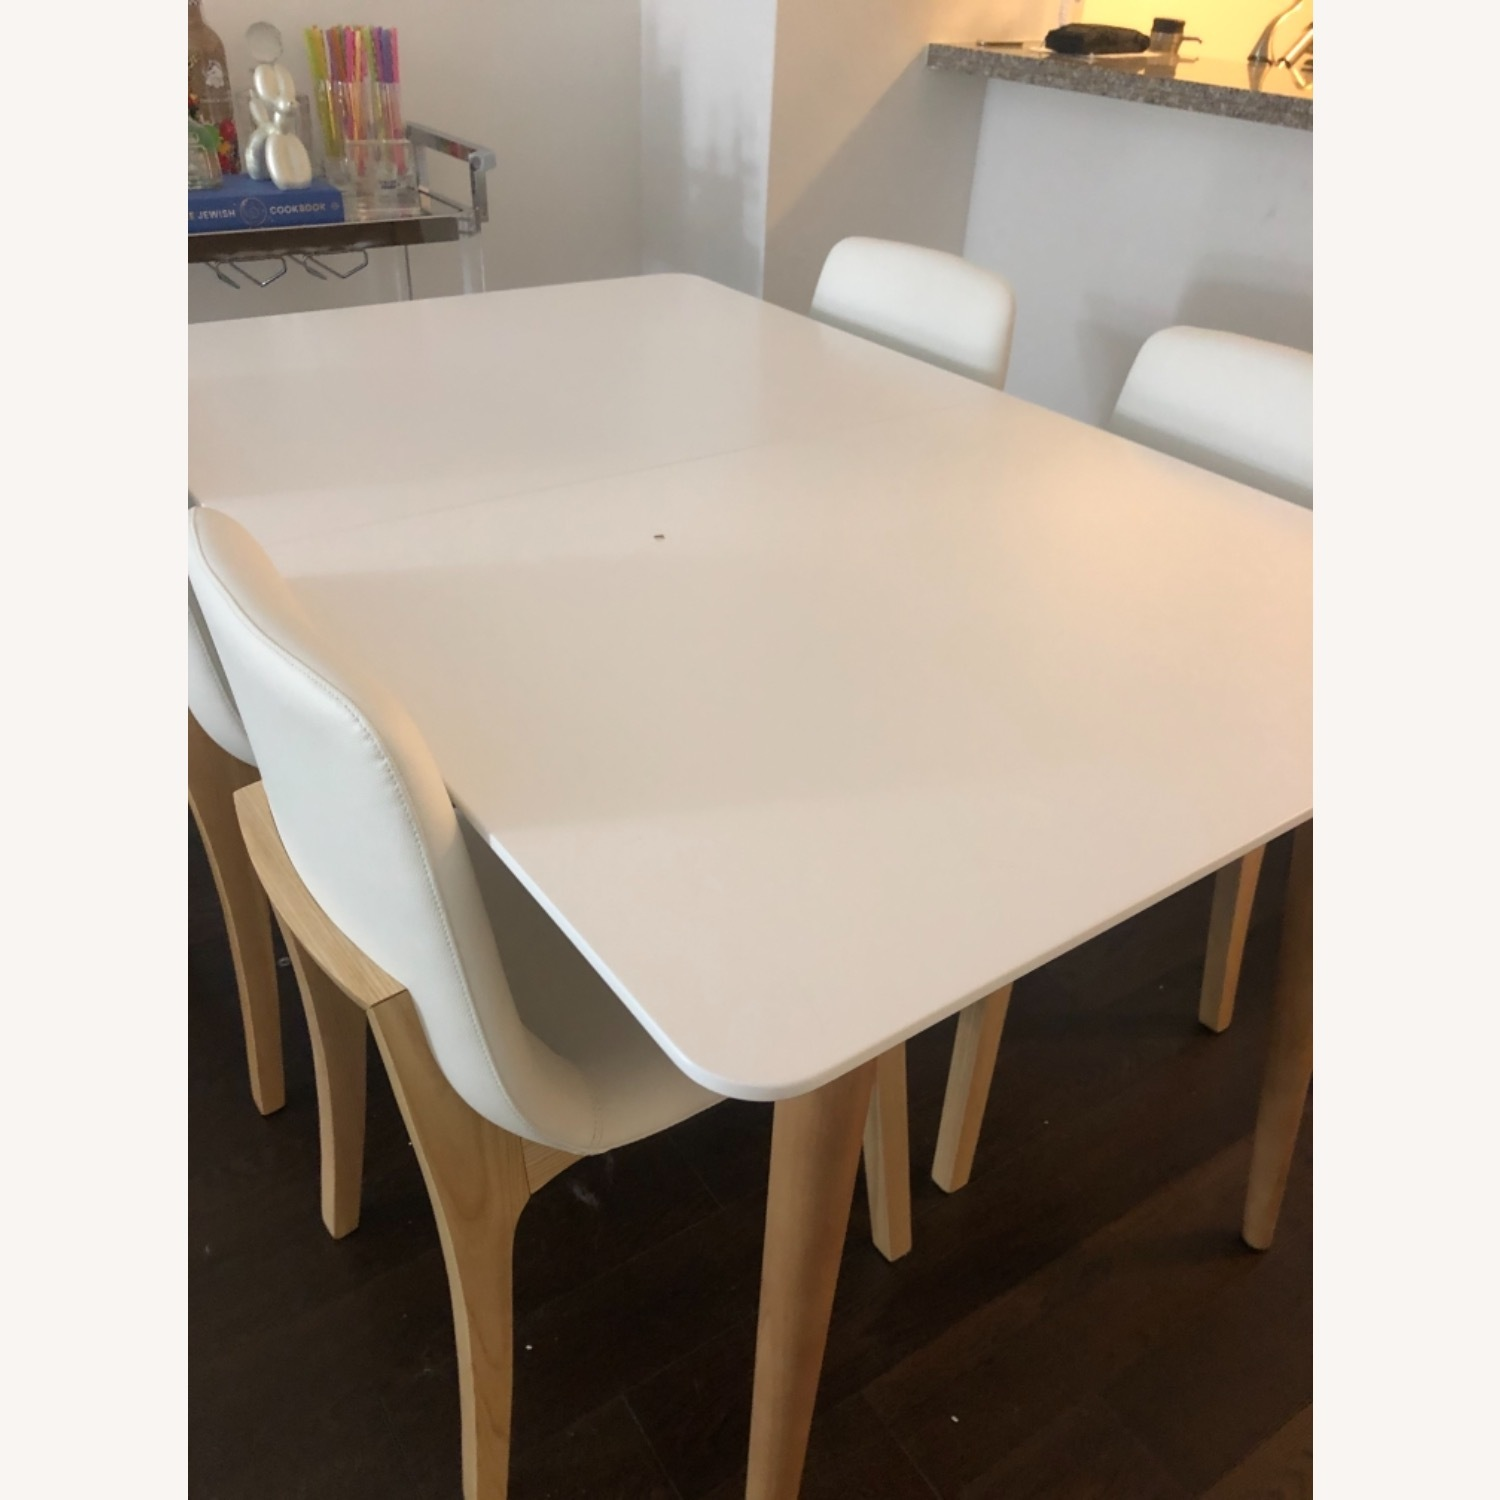 Rove Concepts White with Wood Dining Table - image-3